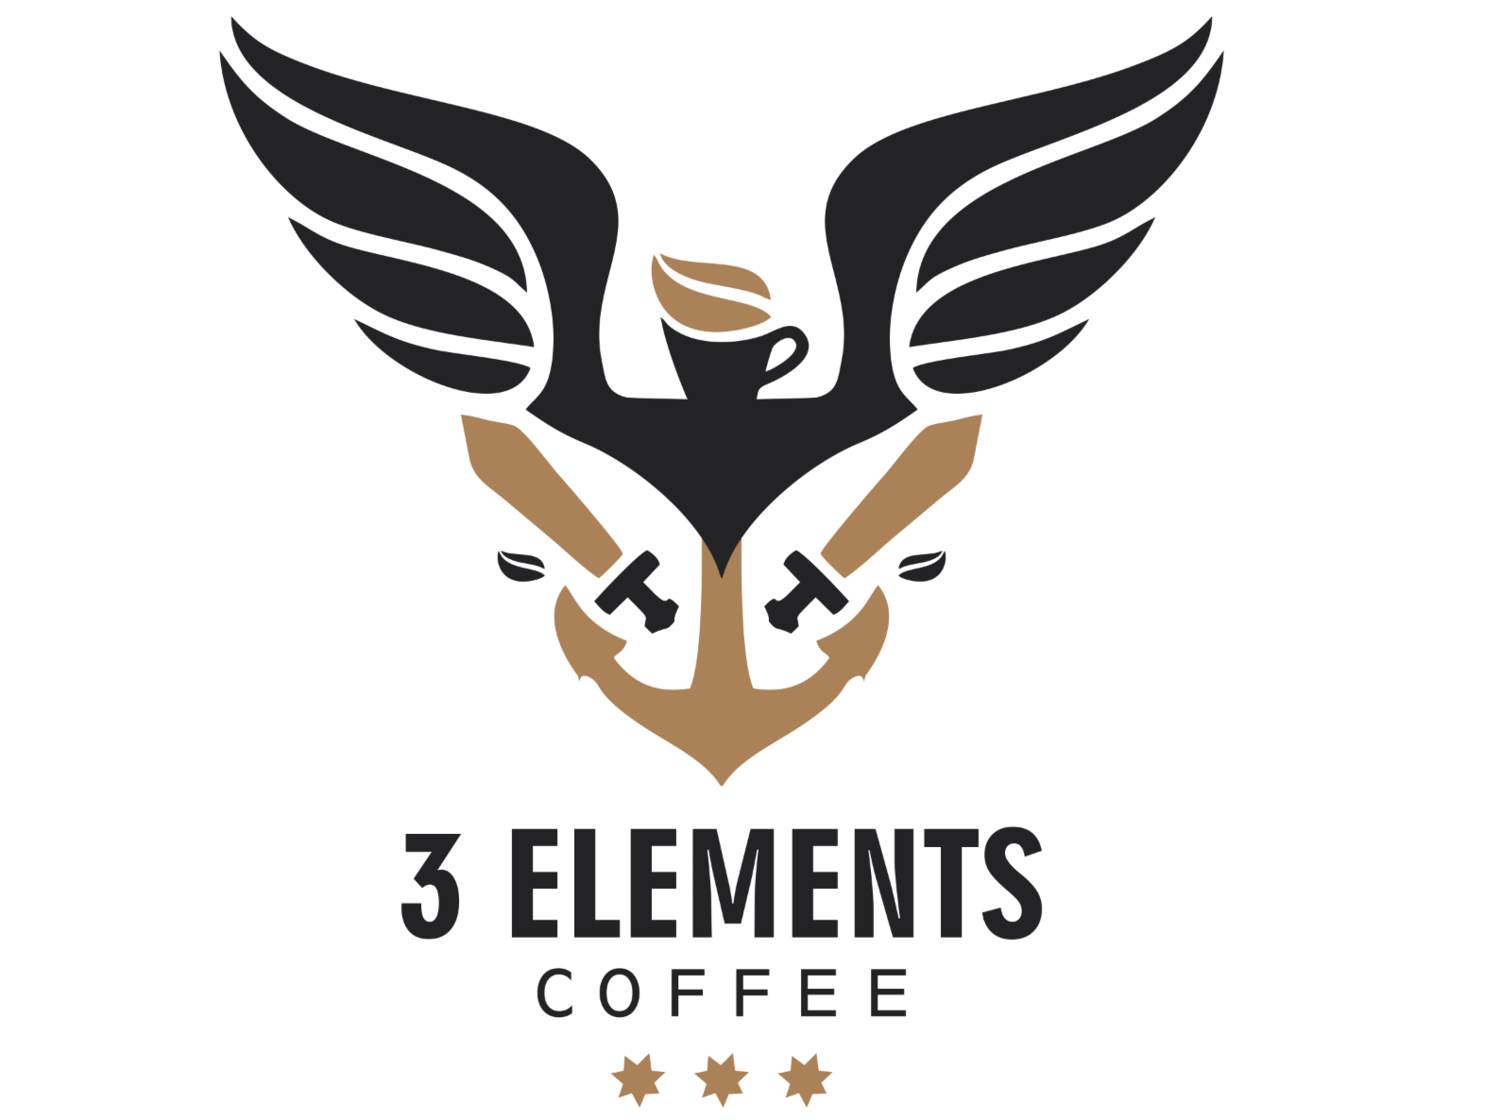 3 elements coffee- a veteran owned company